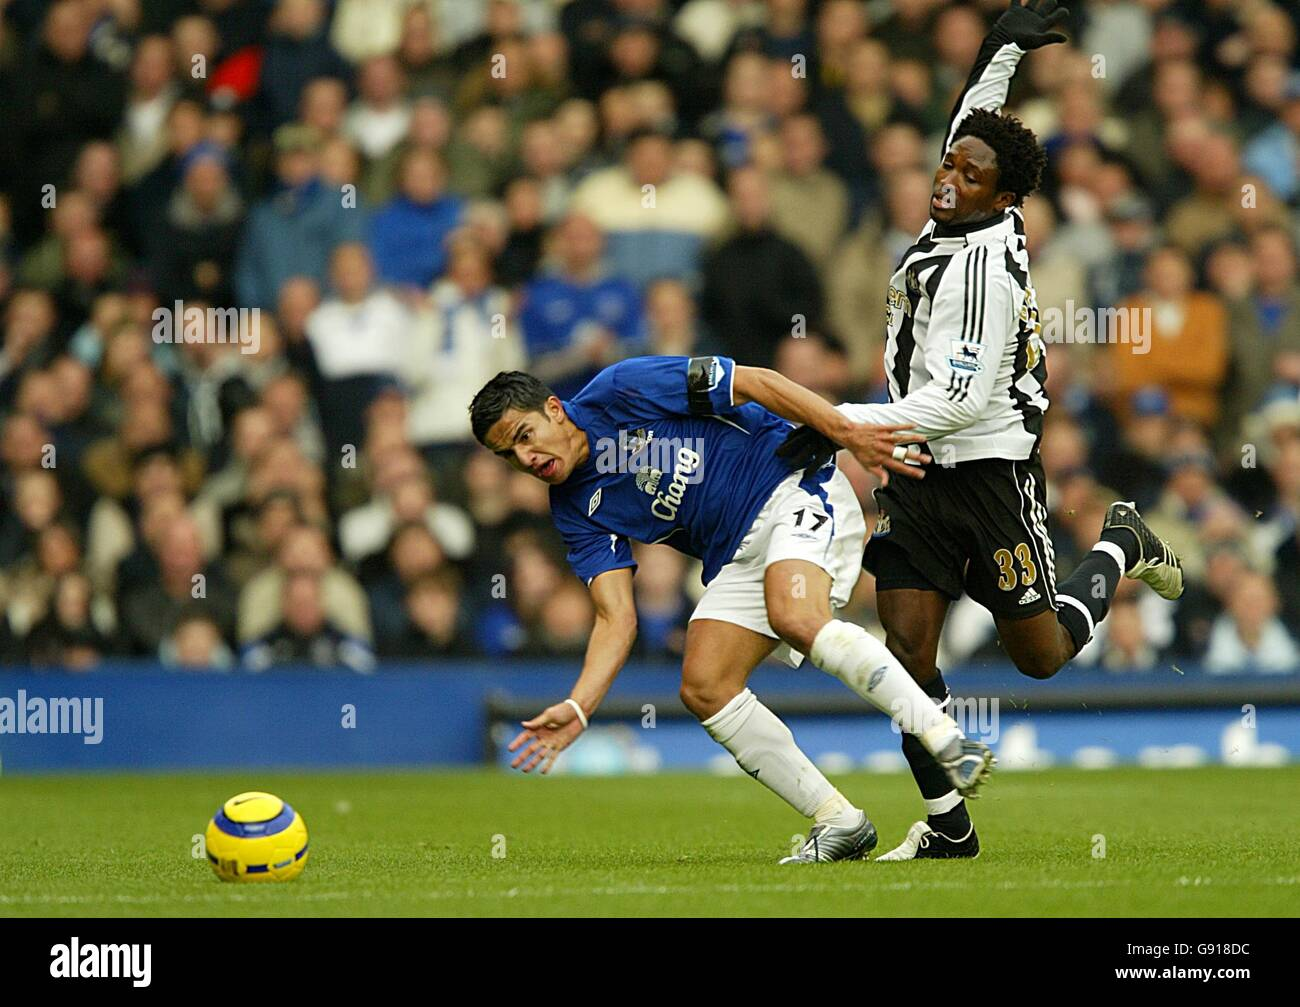 Soccer - FA Barclays Premiership - Everton v Newcastle United - Goodison Park - Stock Image